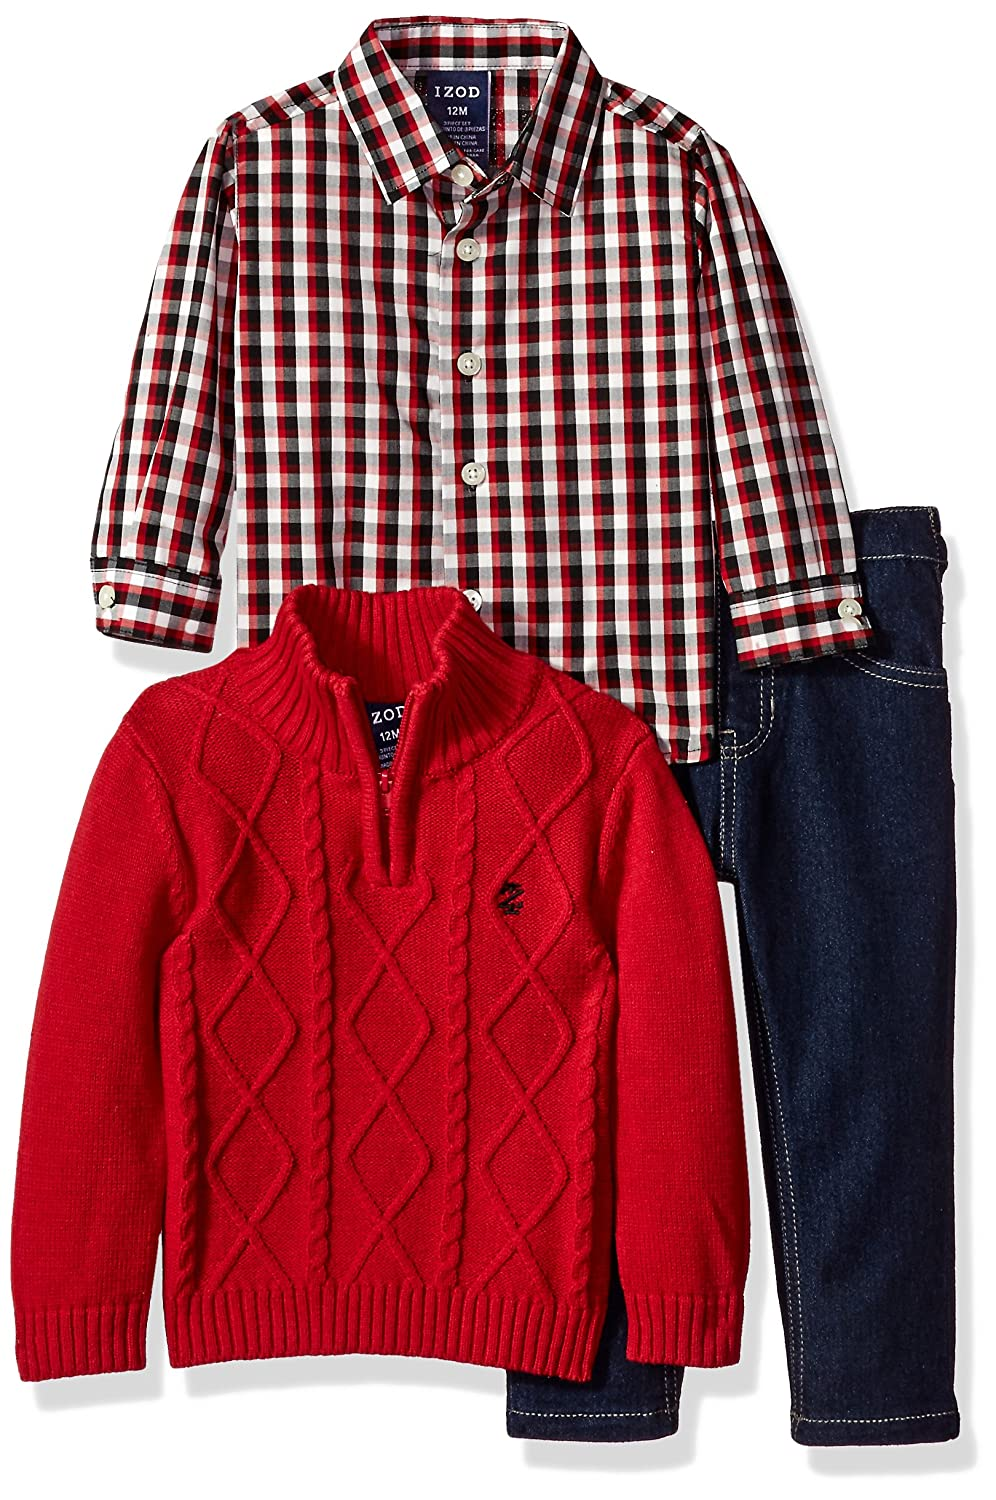 IZOD Baby Boys' Three Piece Sweater Set IZOD Children's Apparel